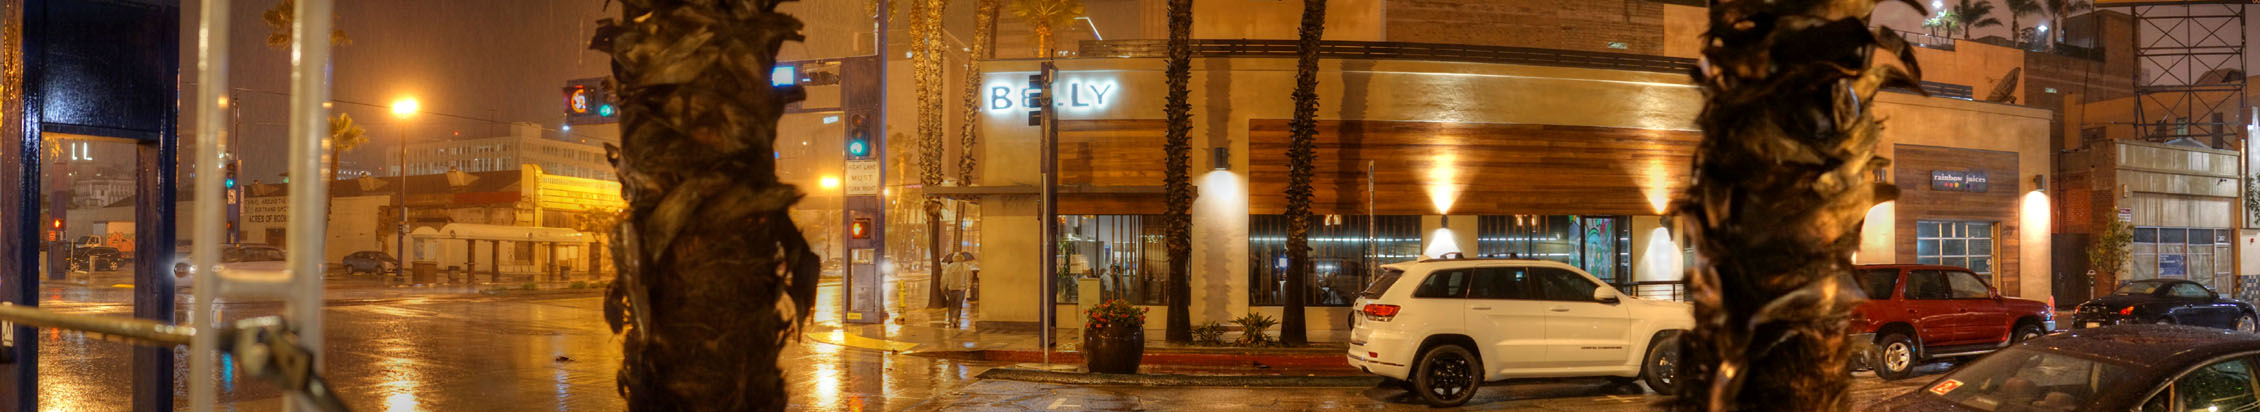 Beer Belly Long Beach Exterior